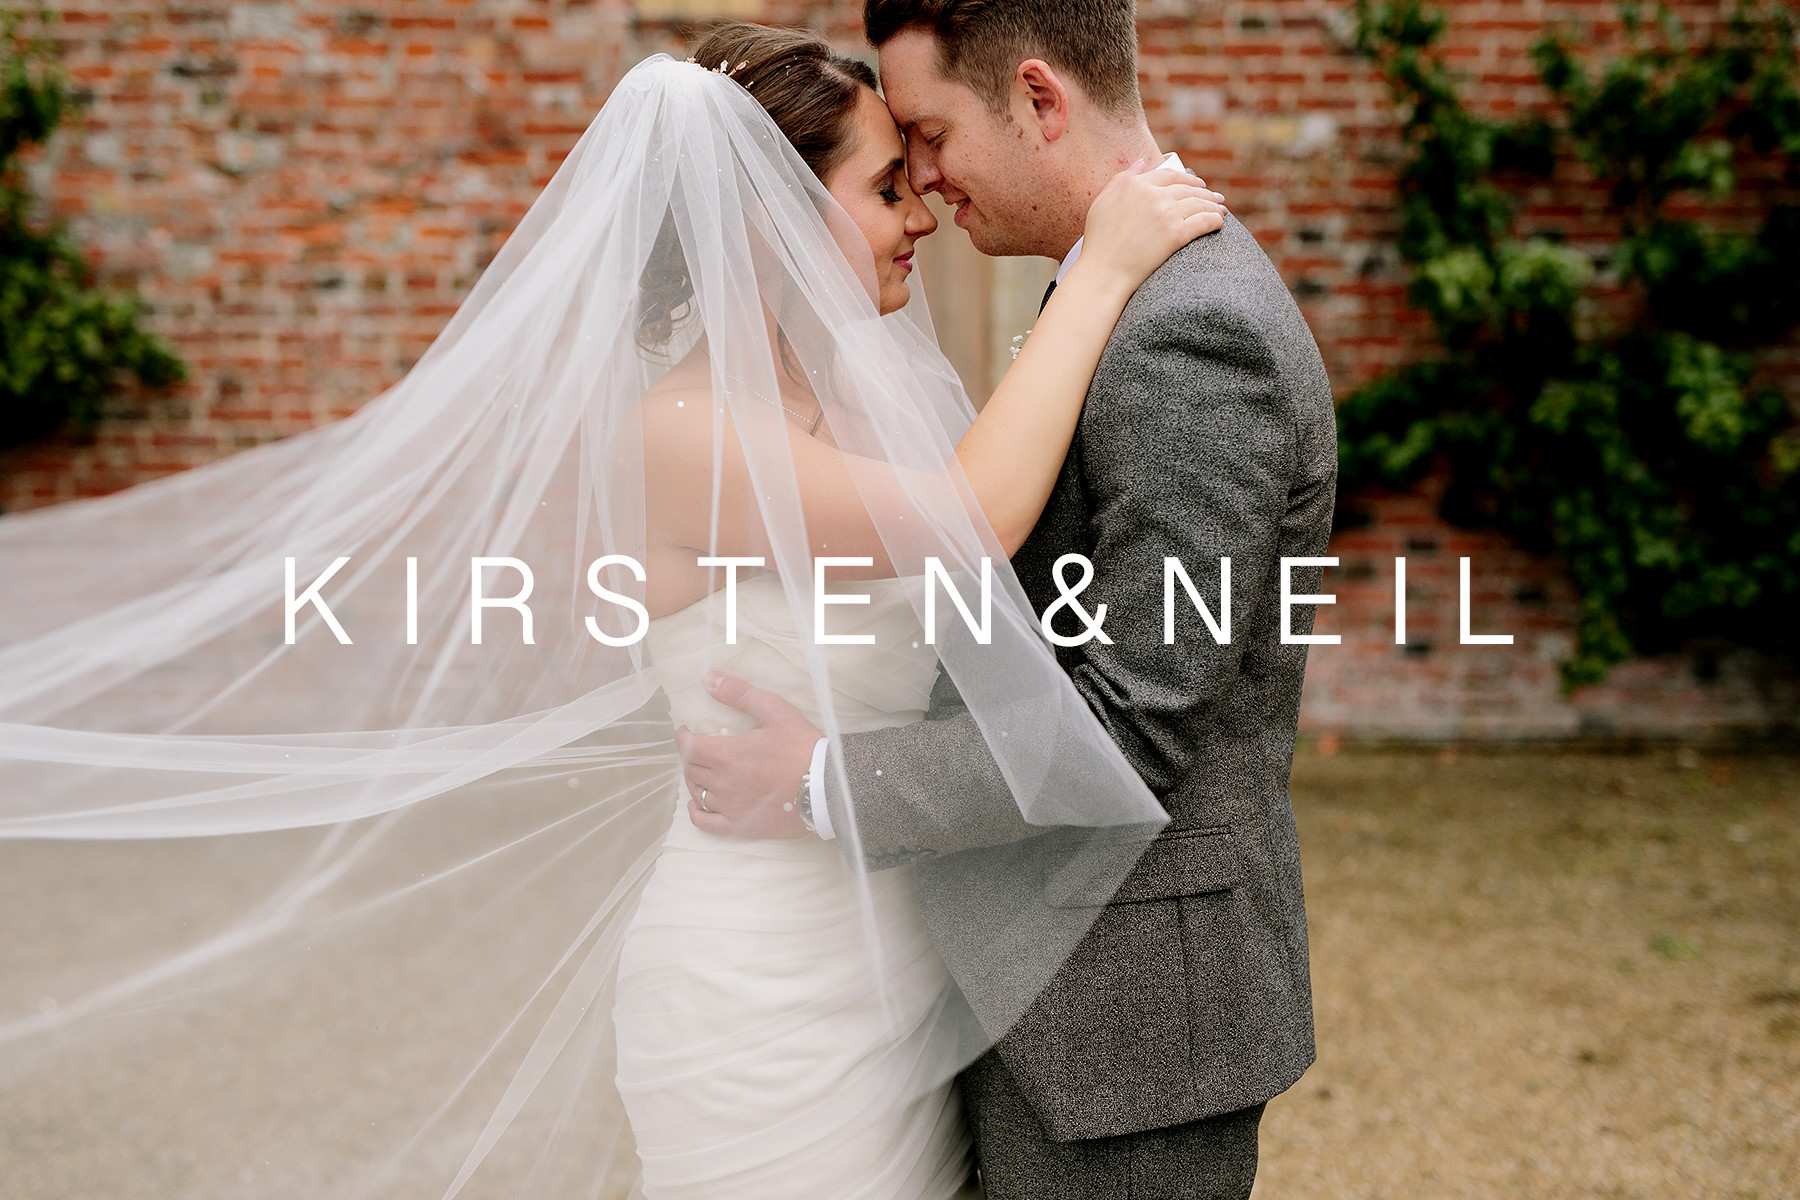 Kirsten & Neil - Charlton House Wedding Photos